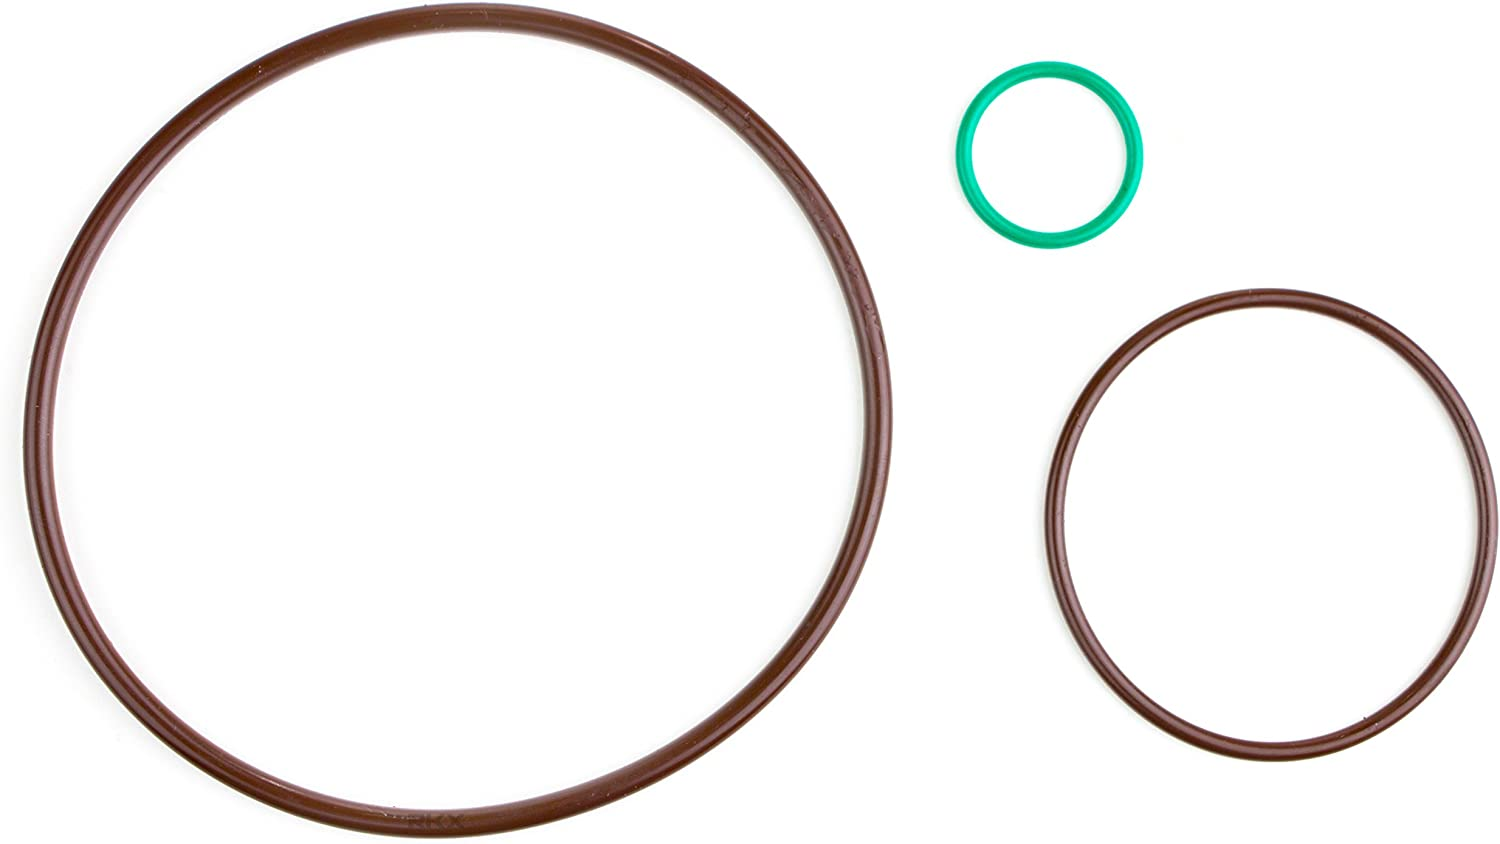 For 2006-2009 Mercedes CLK350 A//C System O-Ring and Gasket Kit 86495WW 2008 2007